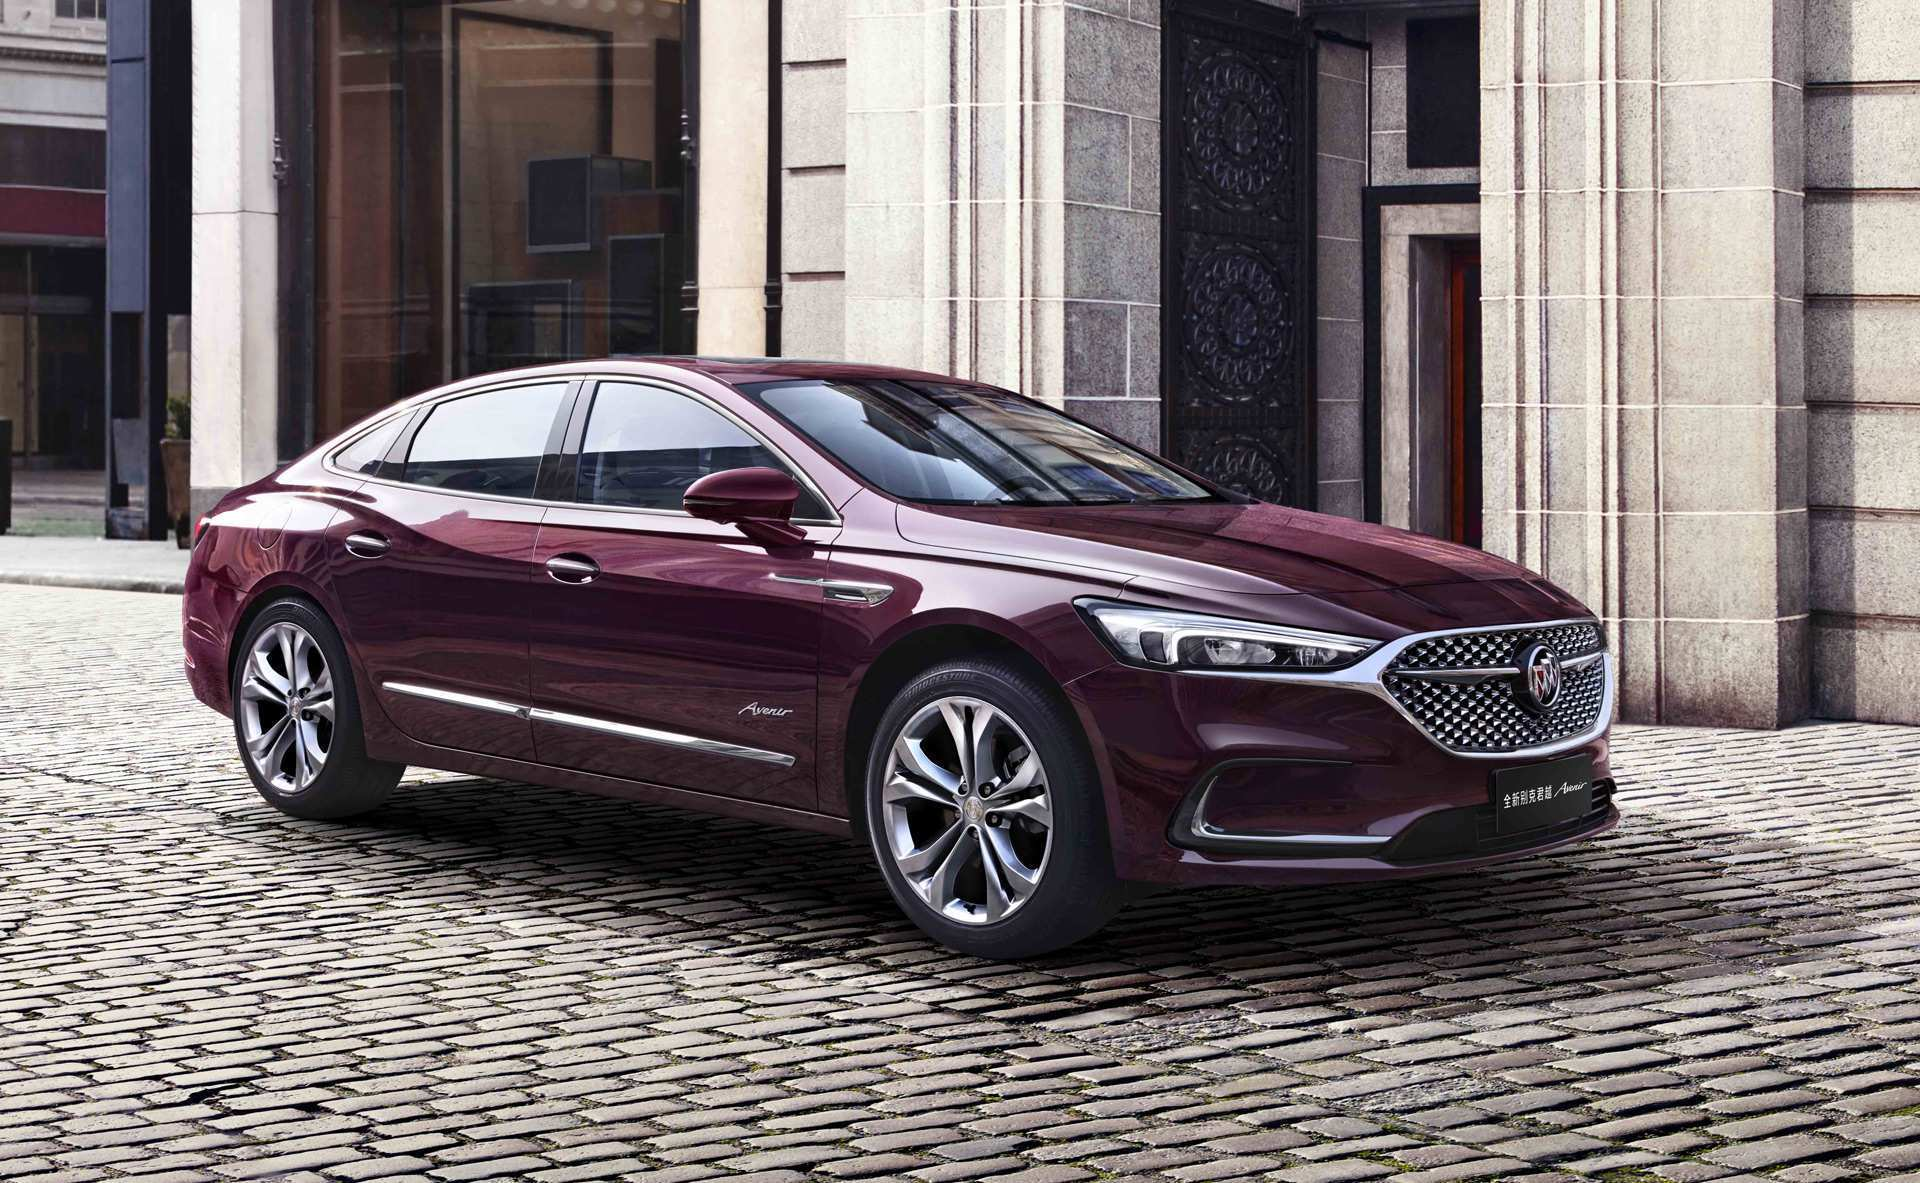 82 The Best 2020 Buick Lacrosse Refresh Photos